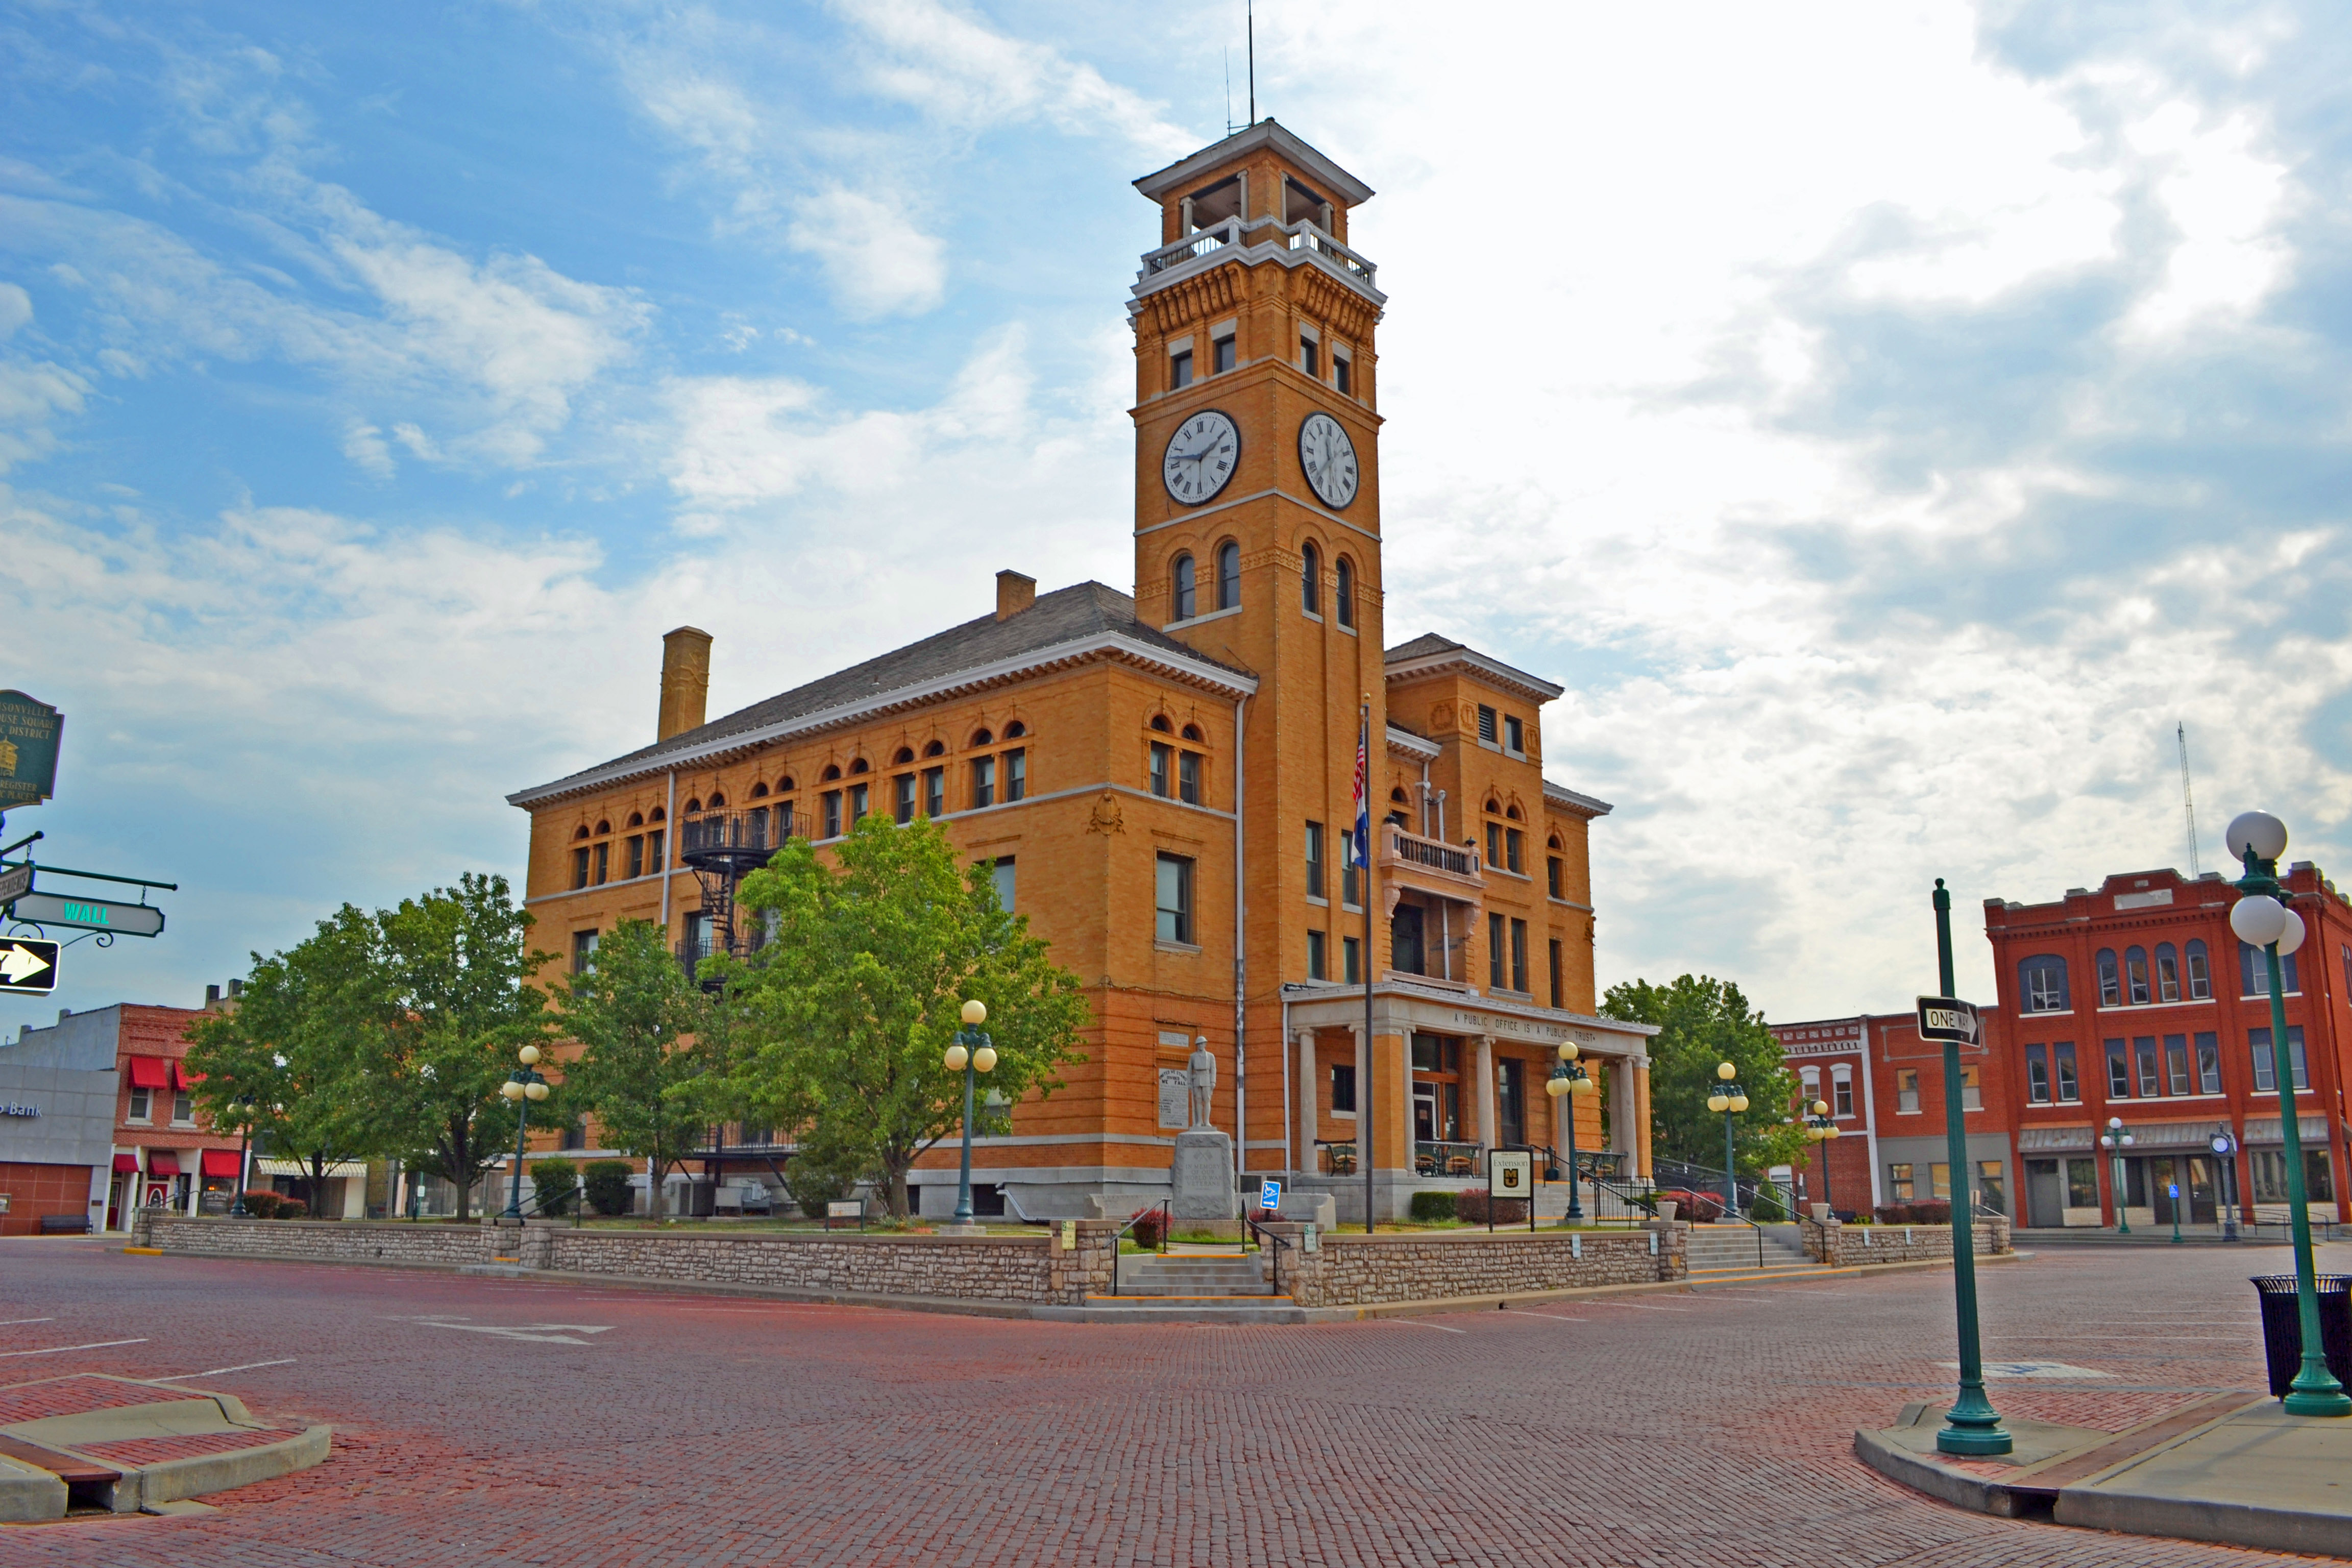 Cass County Courthouse on the Harrisonville Square.